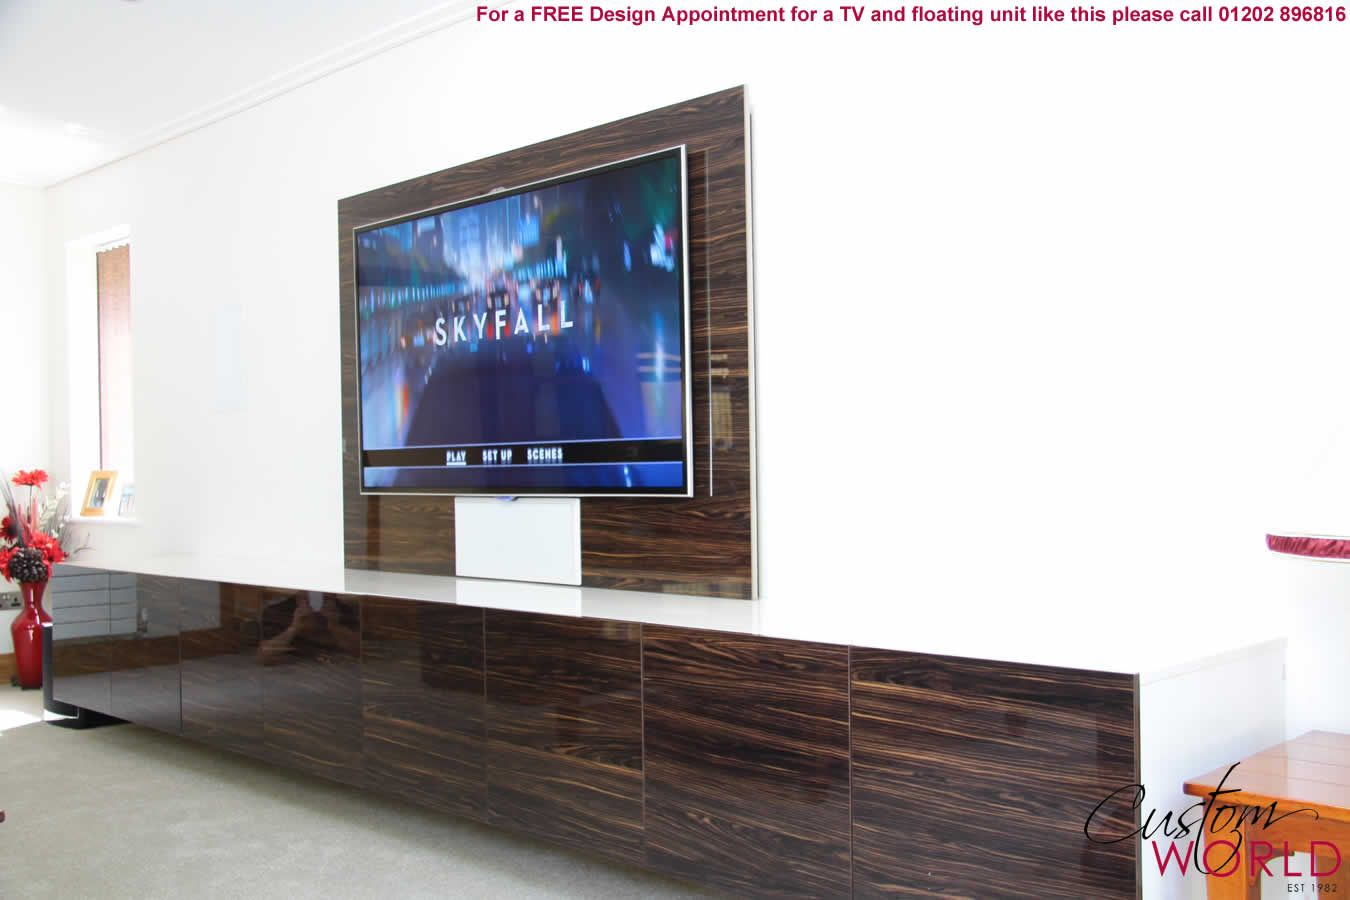 floating tv unit uk - Google Search | TV units | Pinterest ...